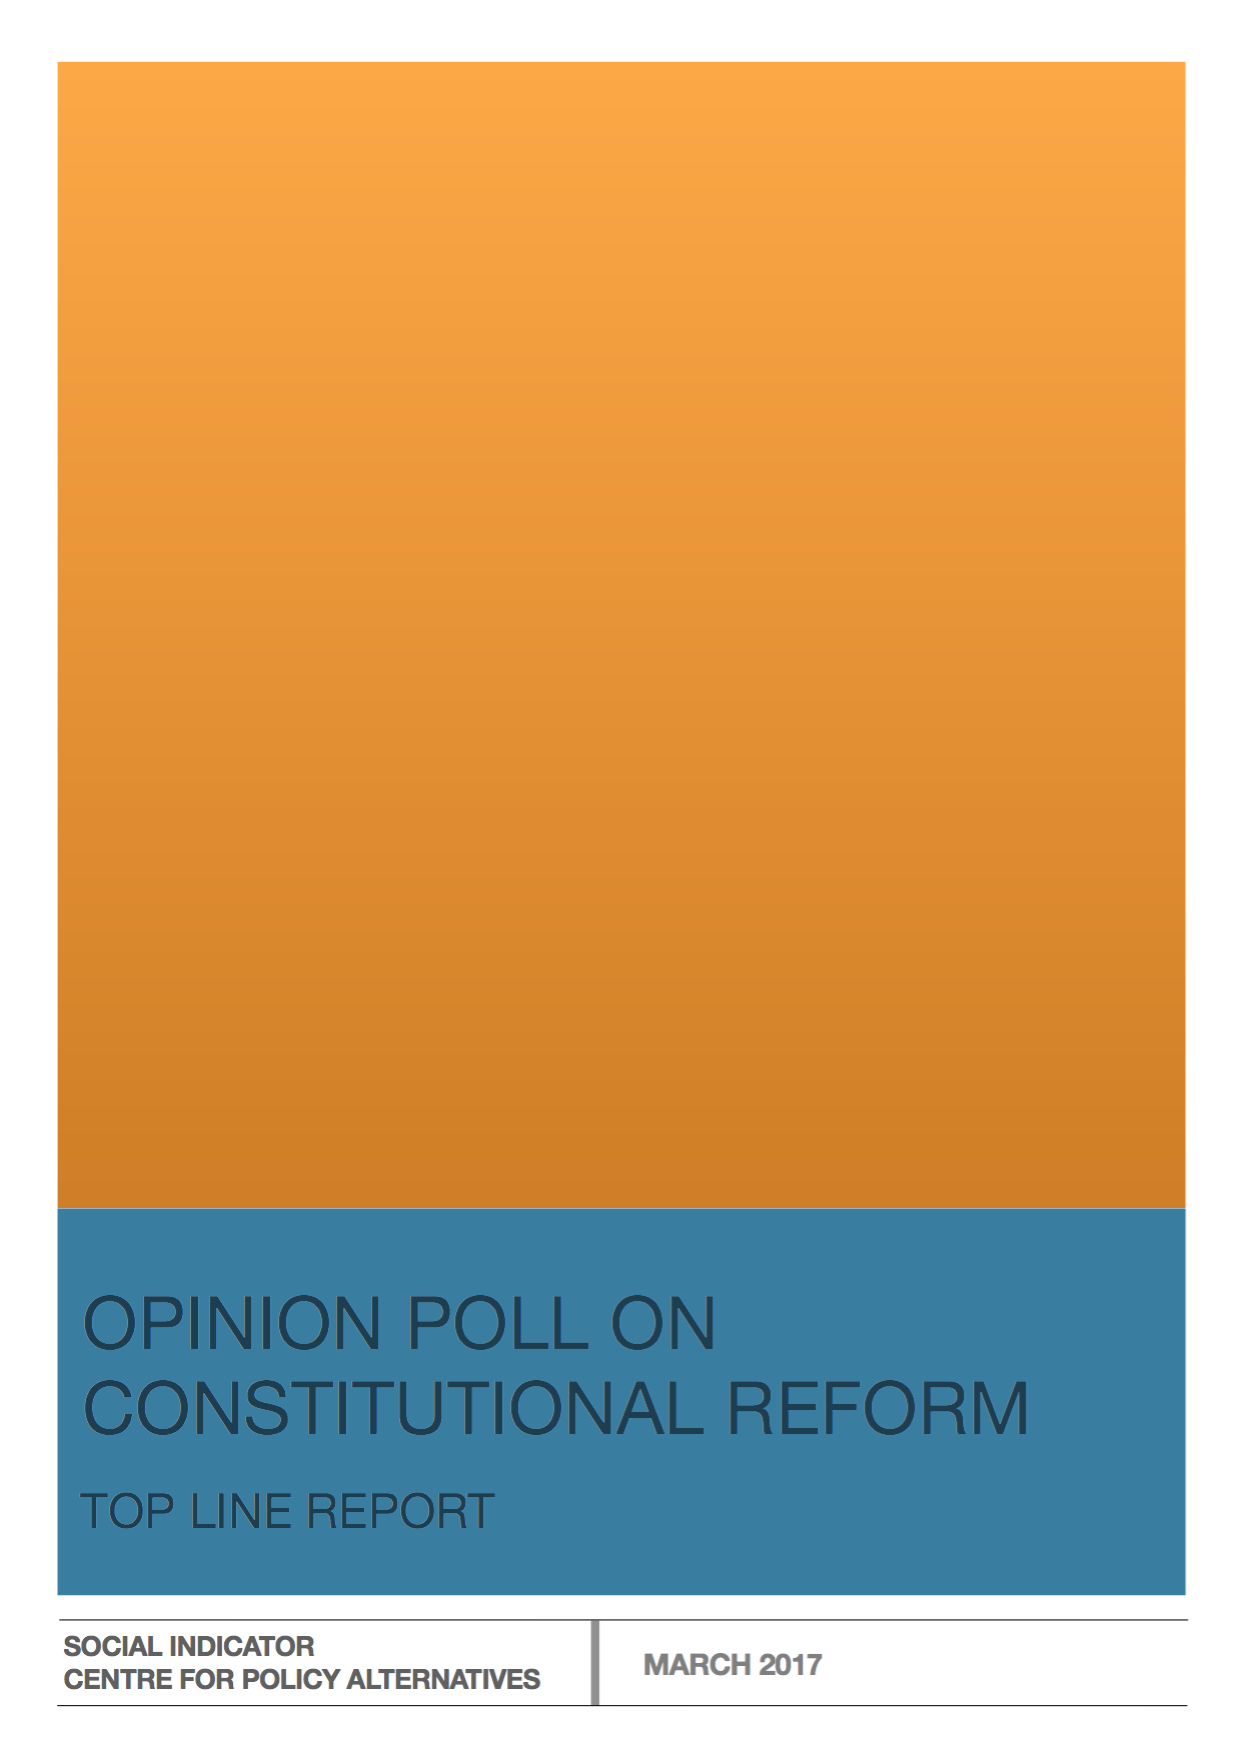 Opinion Poll on Constitutional Reform – Topline Report